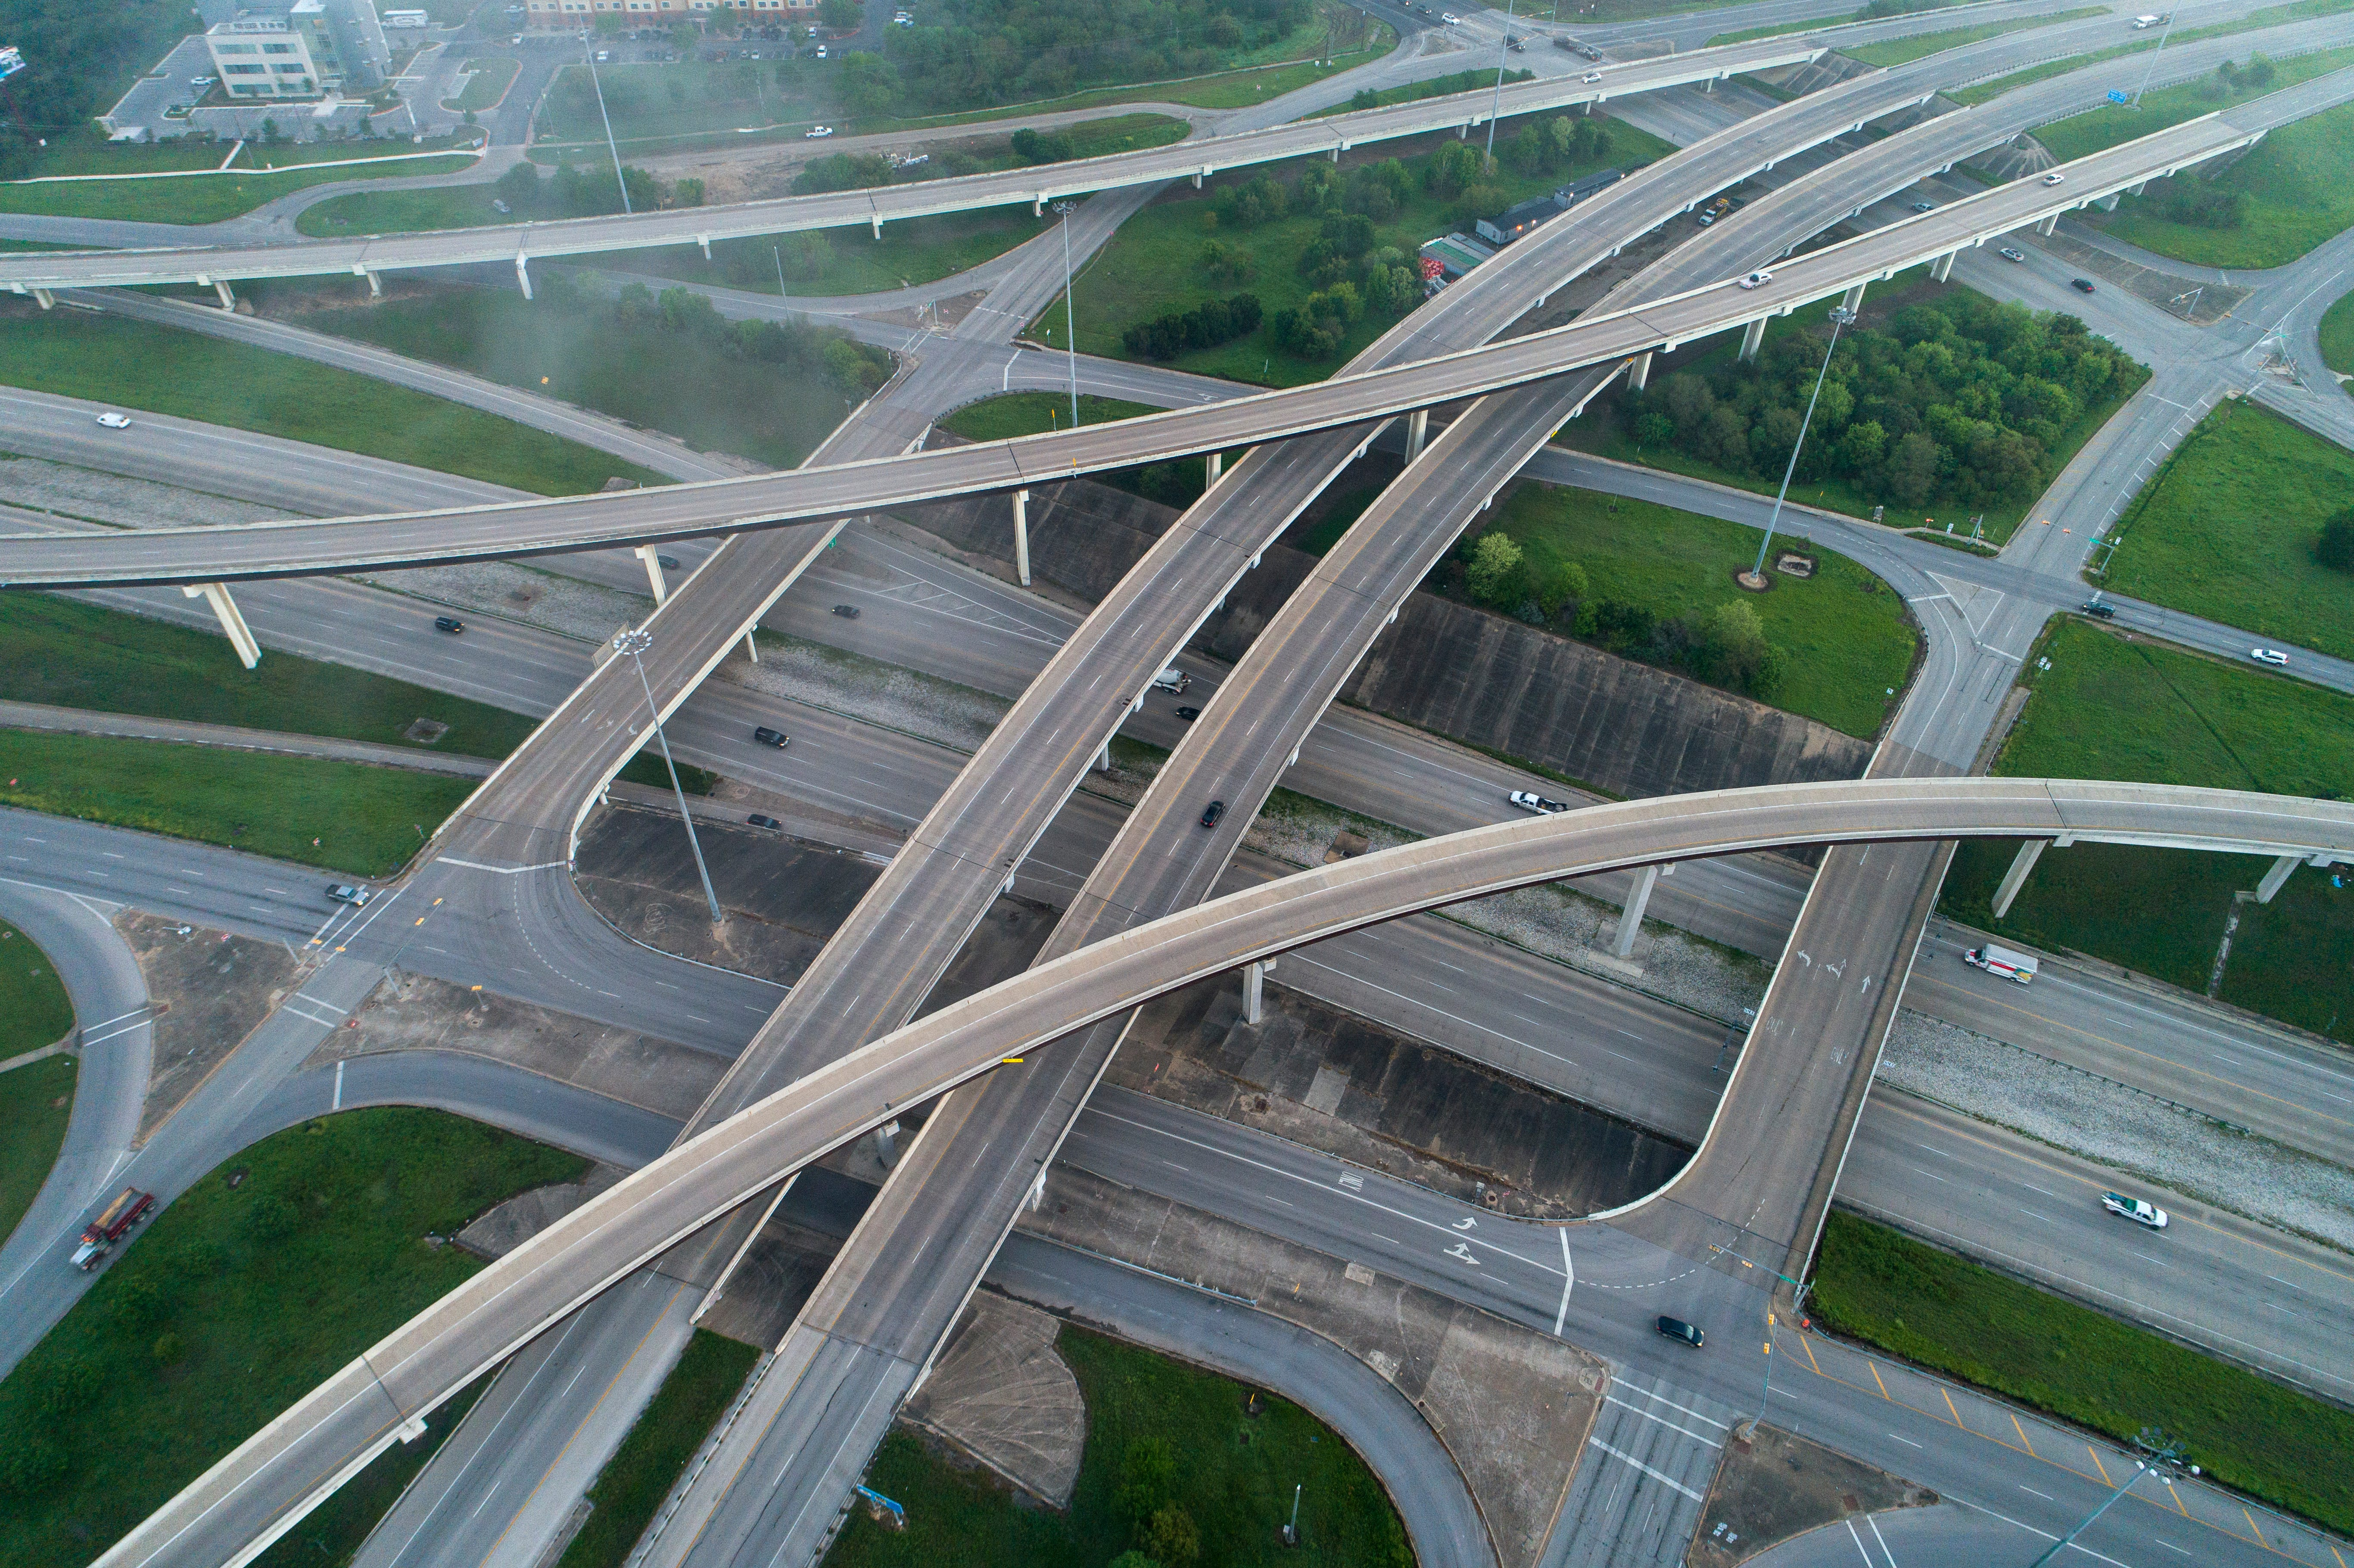 Shelter-in-place orders left neighborhoods, city streets and major thoroughfares eerily empty. On March 25, light traffic flows on the normally busy MoPac Boulevard and U.S. 290 in southwest Austin, Texas.